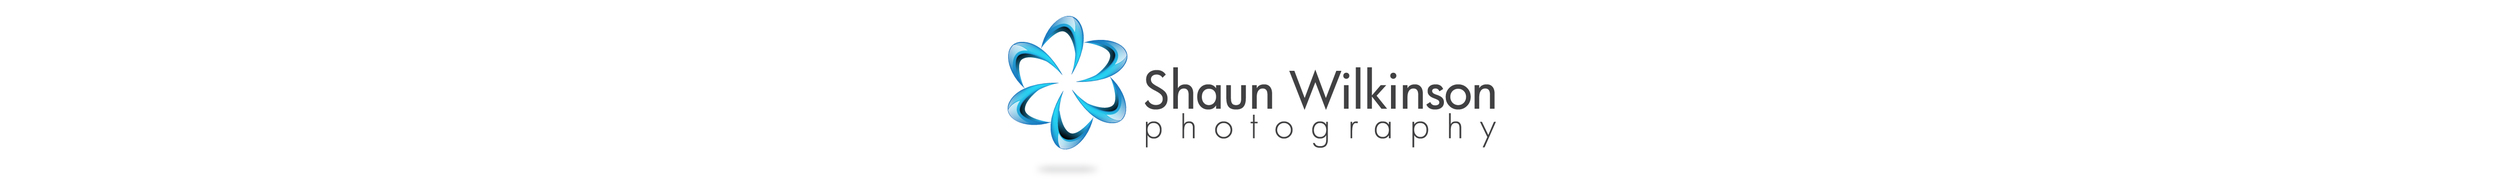 Shaun Wilkinson Photography middle banner.jpg